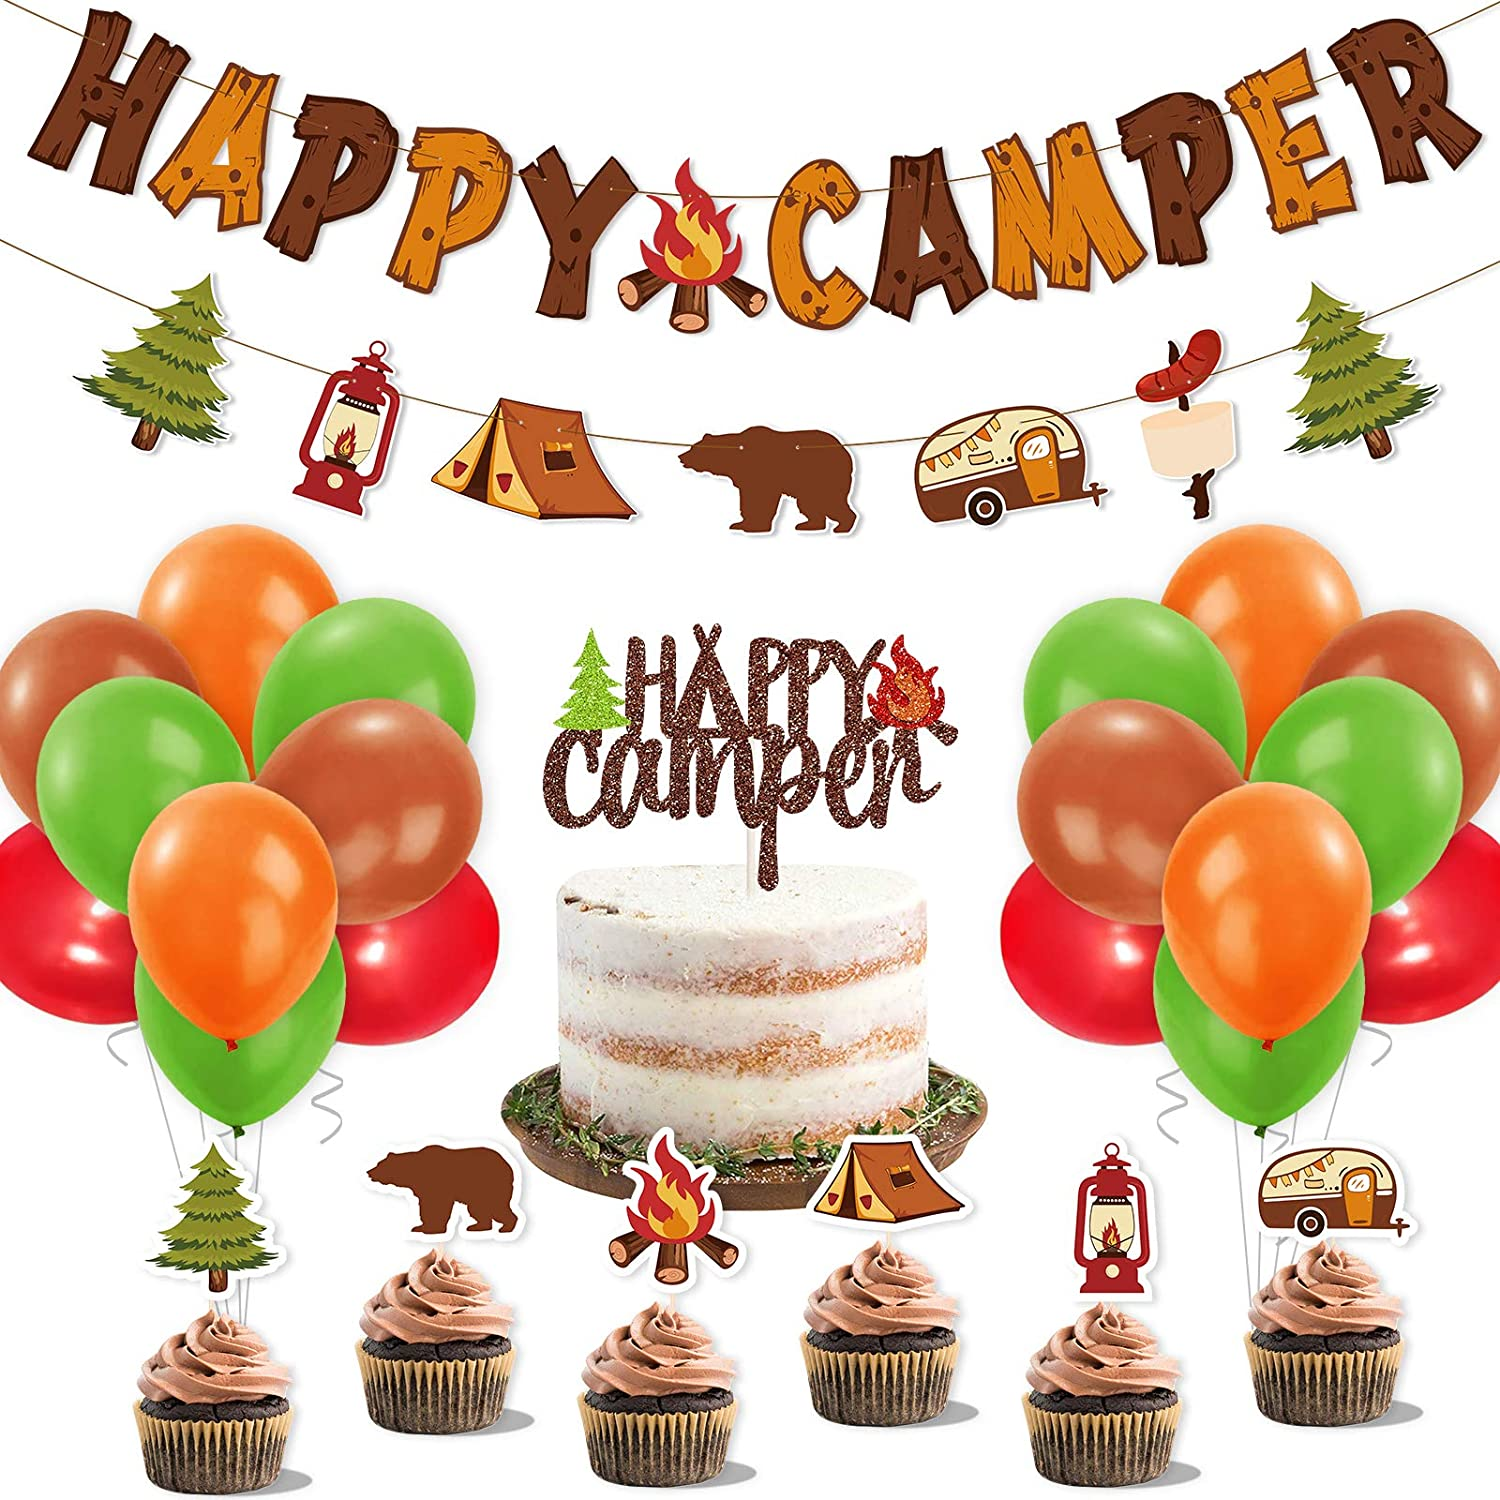 Happy Camper Party Decoration Kit Banner Cake Topper Balloons Kids Backyard Camp Out Birthday Photo Props Favor Campfire Tent S'more Fun Adventure Party Ideas